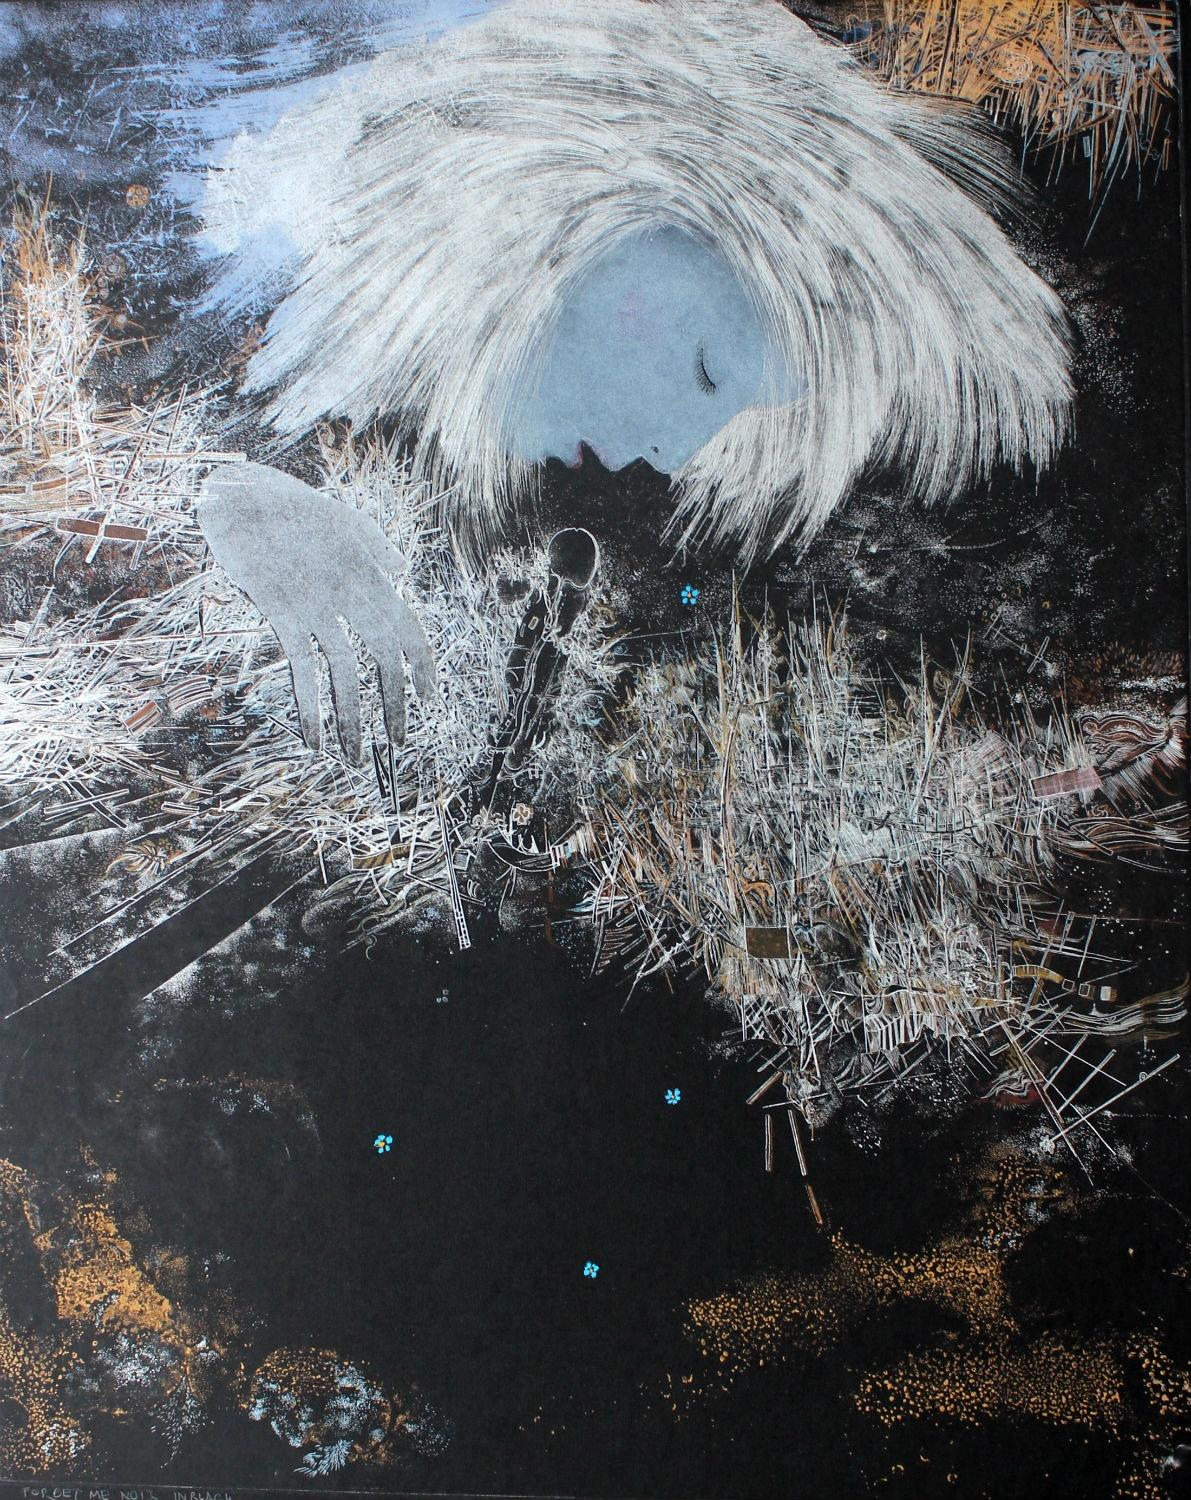 Forget me nots - XX century, Mixed media print, Figurative, Portrait, Abstract